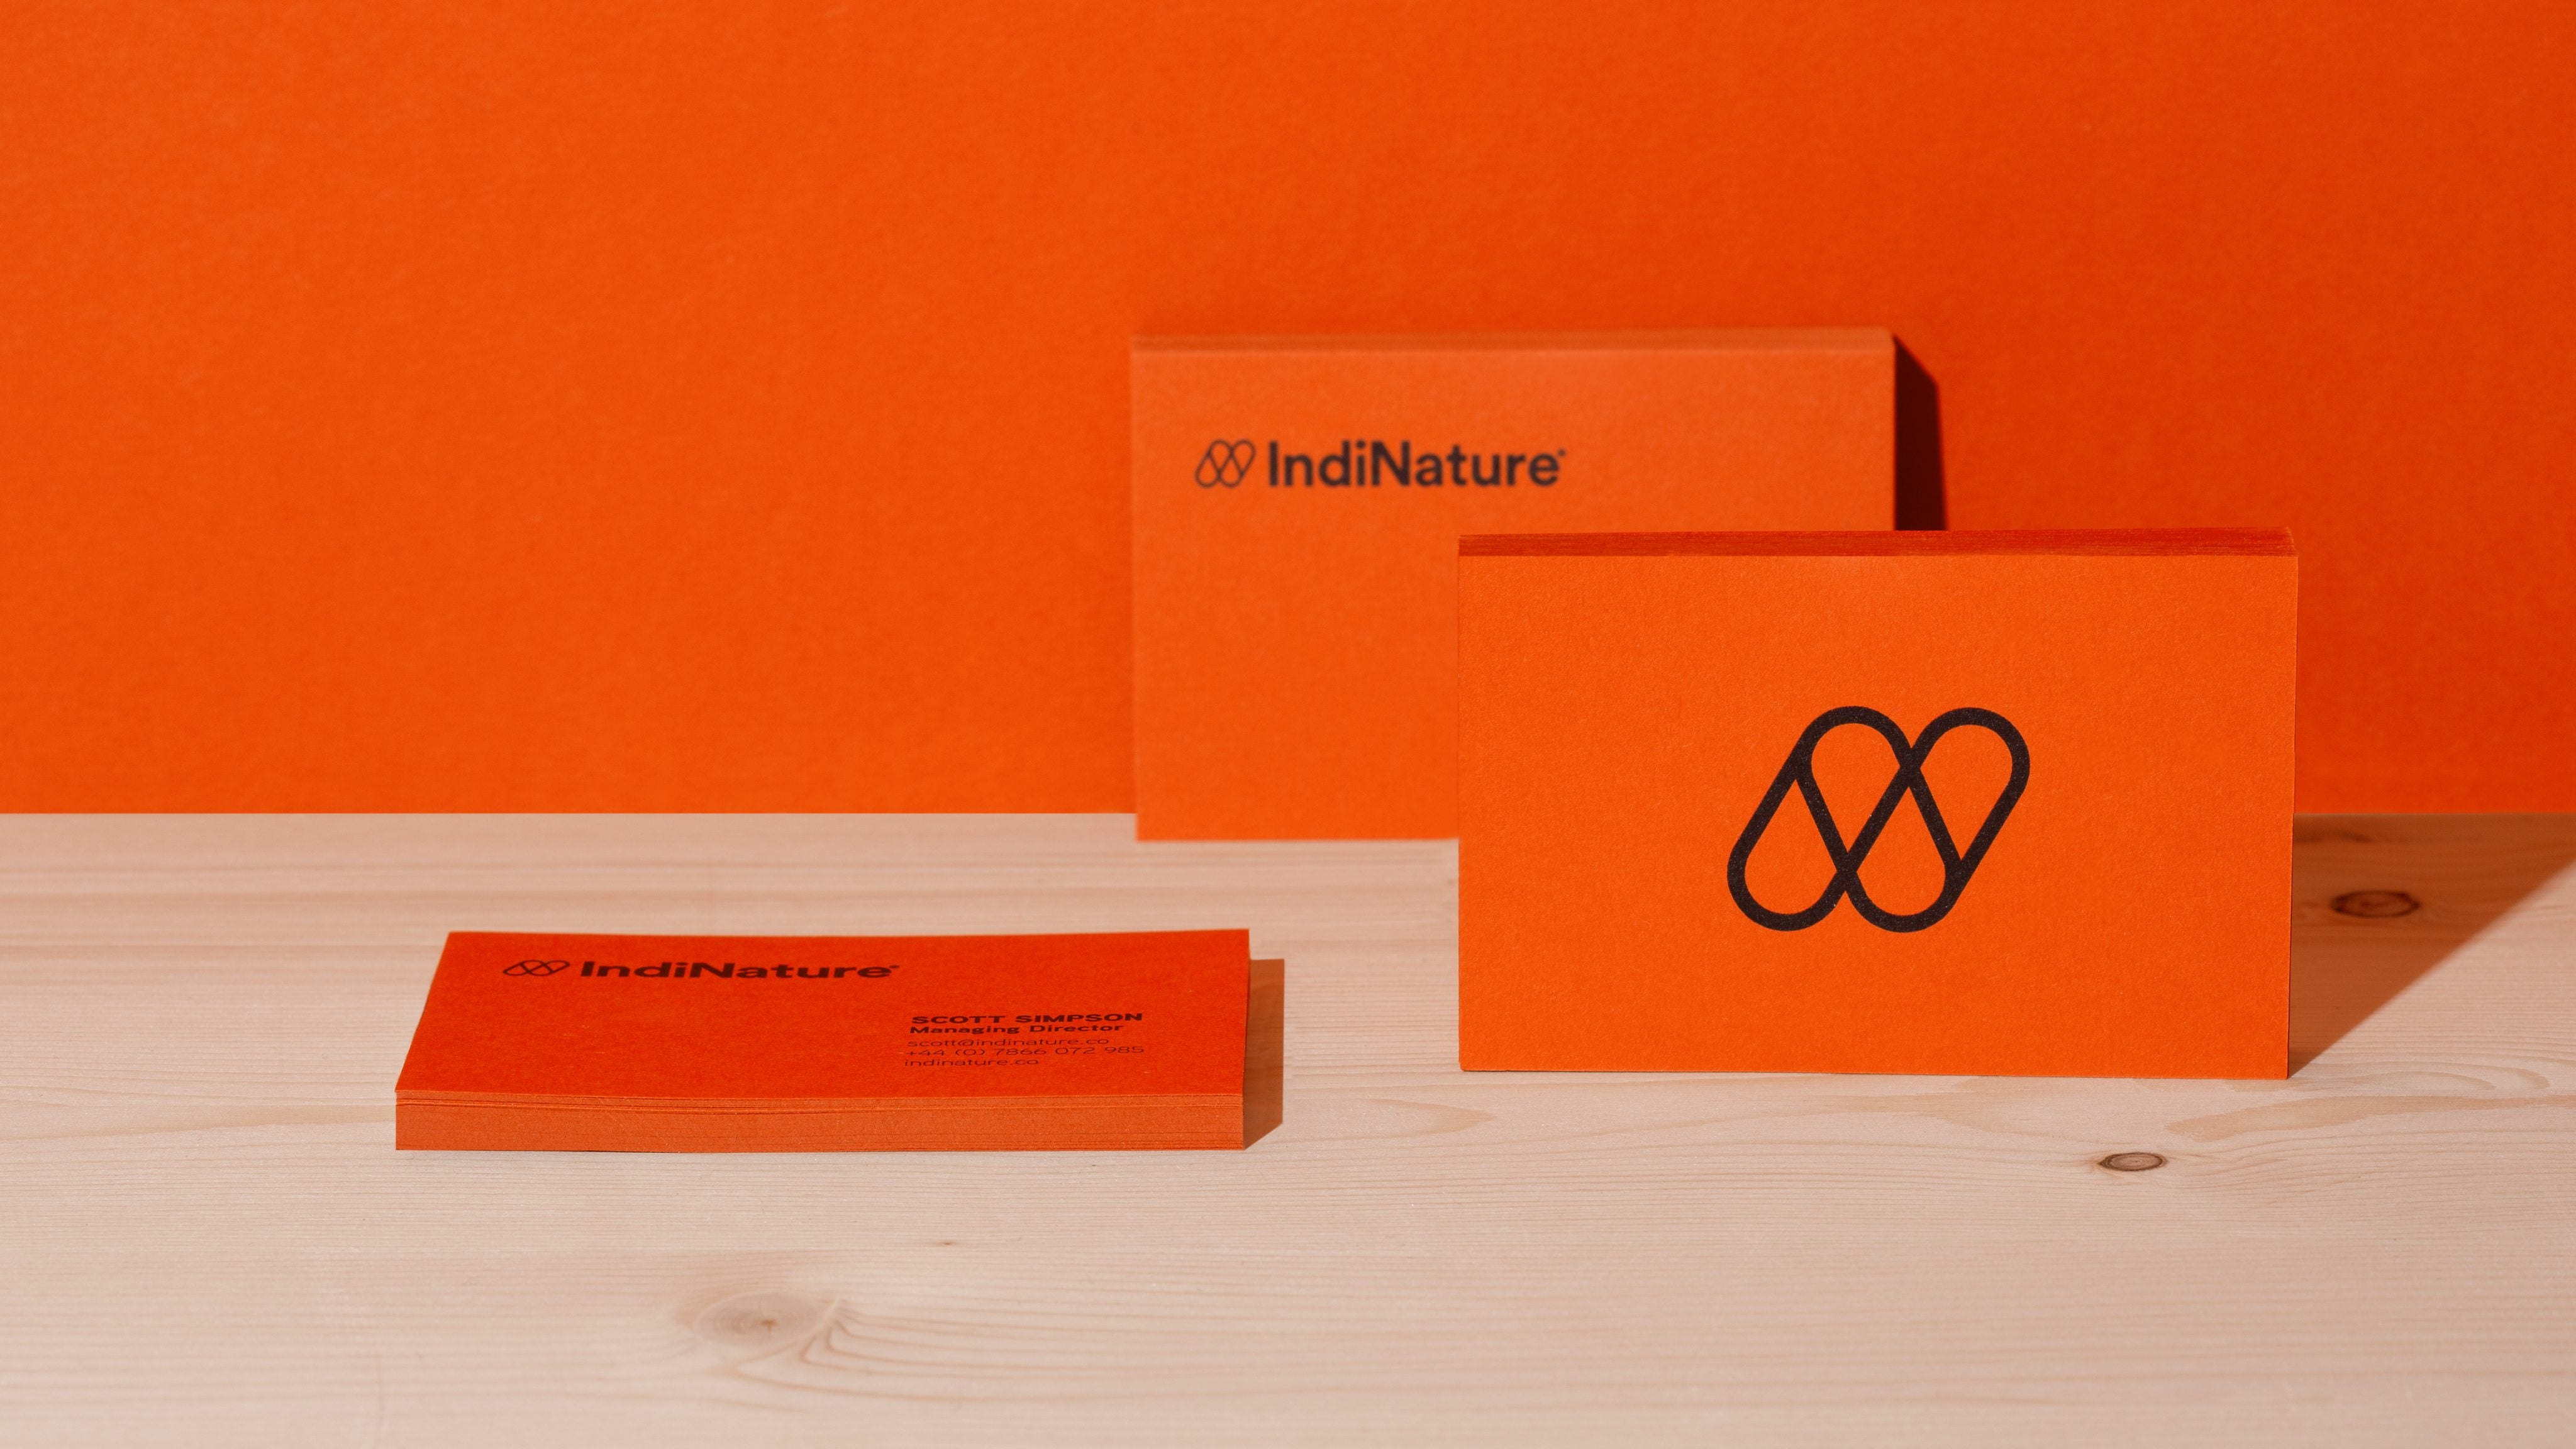 IndiNature business cards